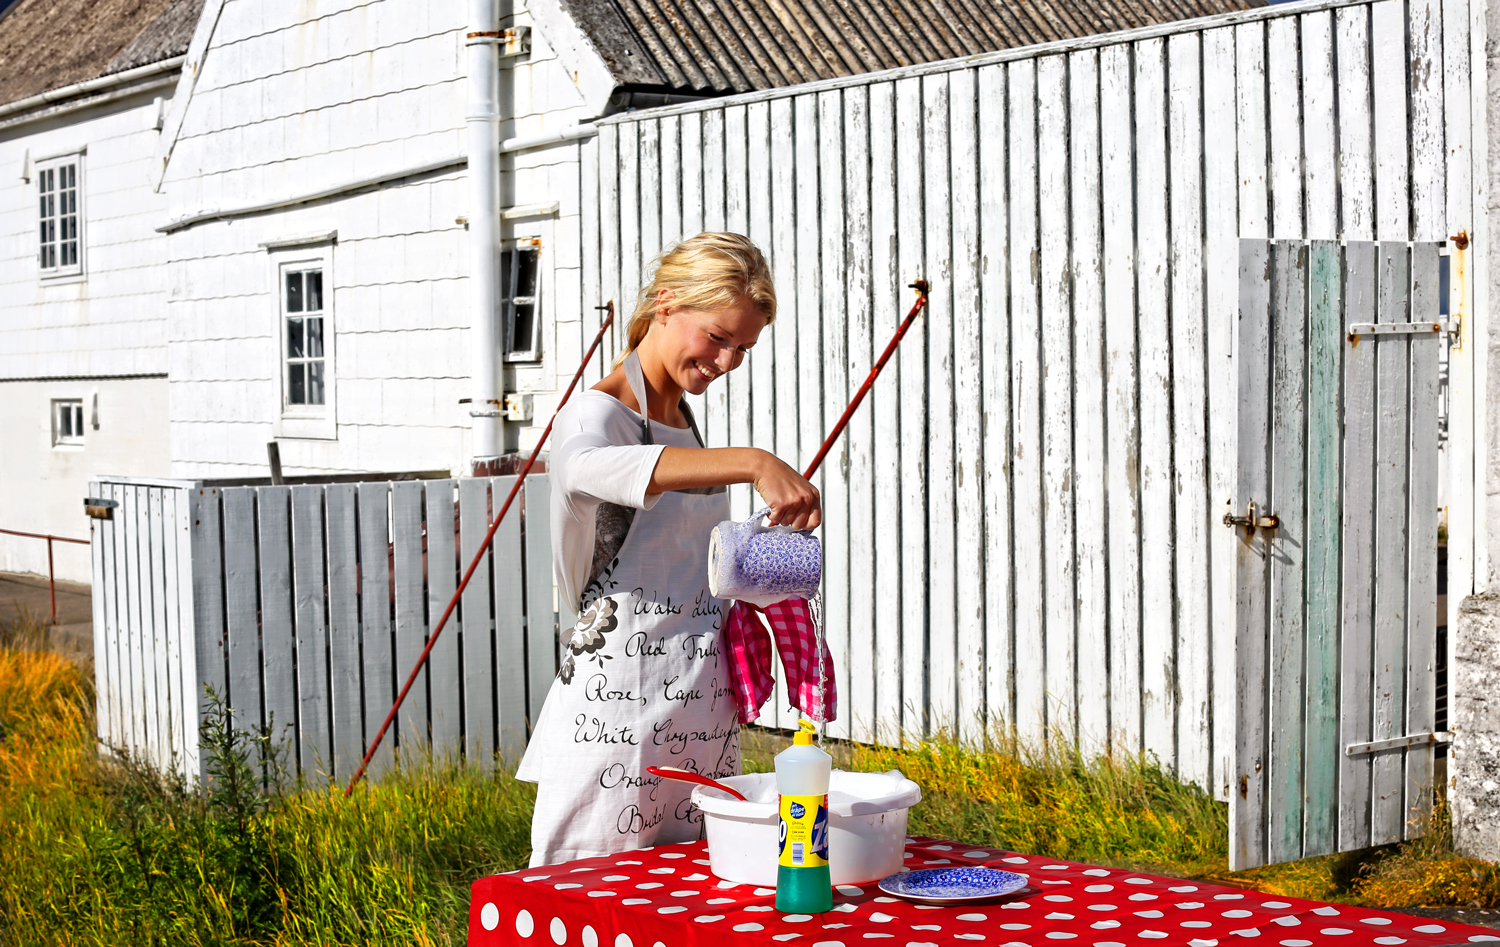 Having to wash the dishes outside in a beautiful setting is only a true pleasure! Stavernsodden lighthouse has a fully equipped kitchen you can wash dishes in, but it's hard to resist the temptation to be outdoors.